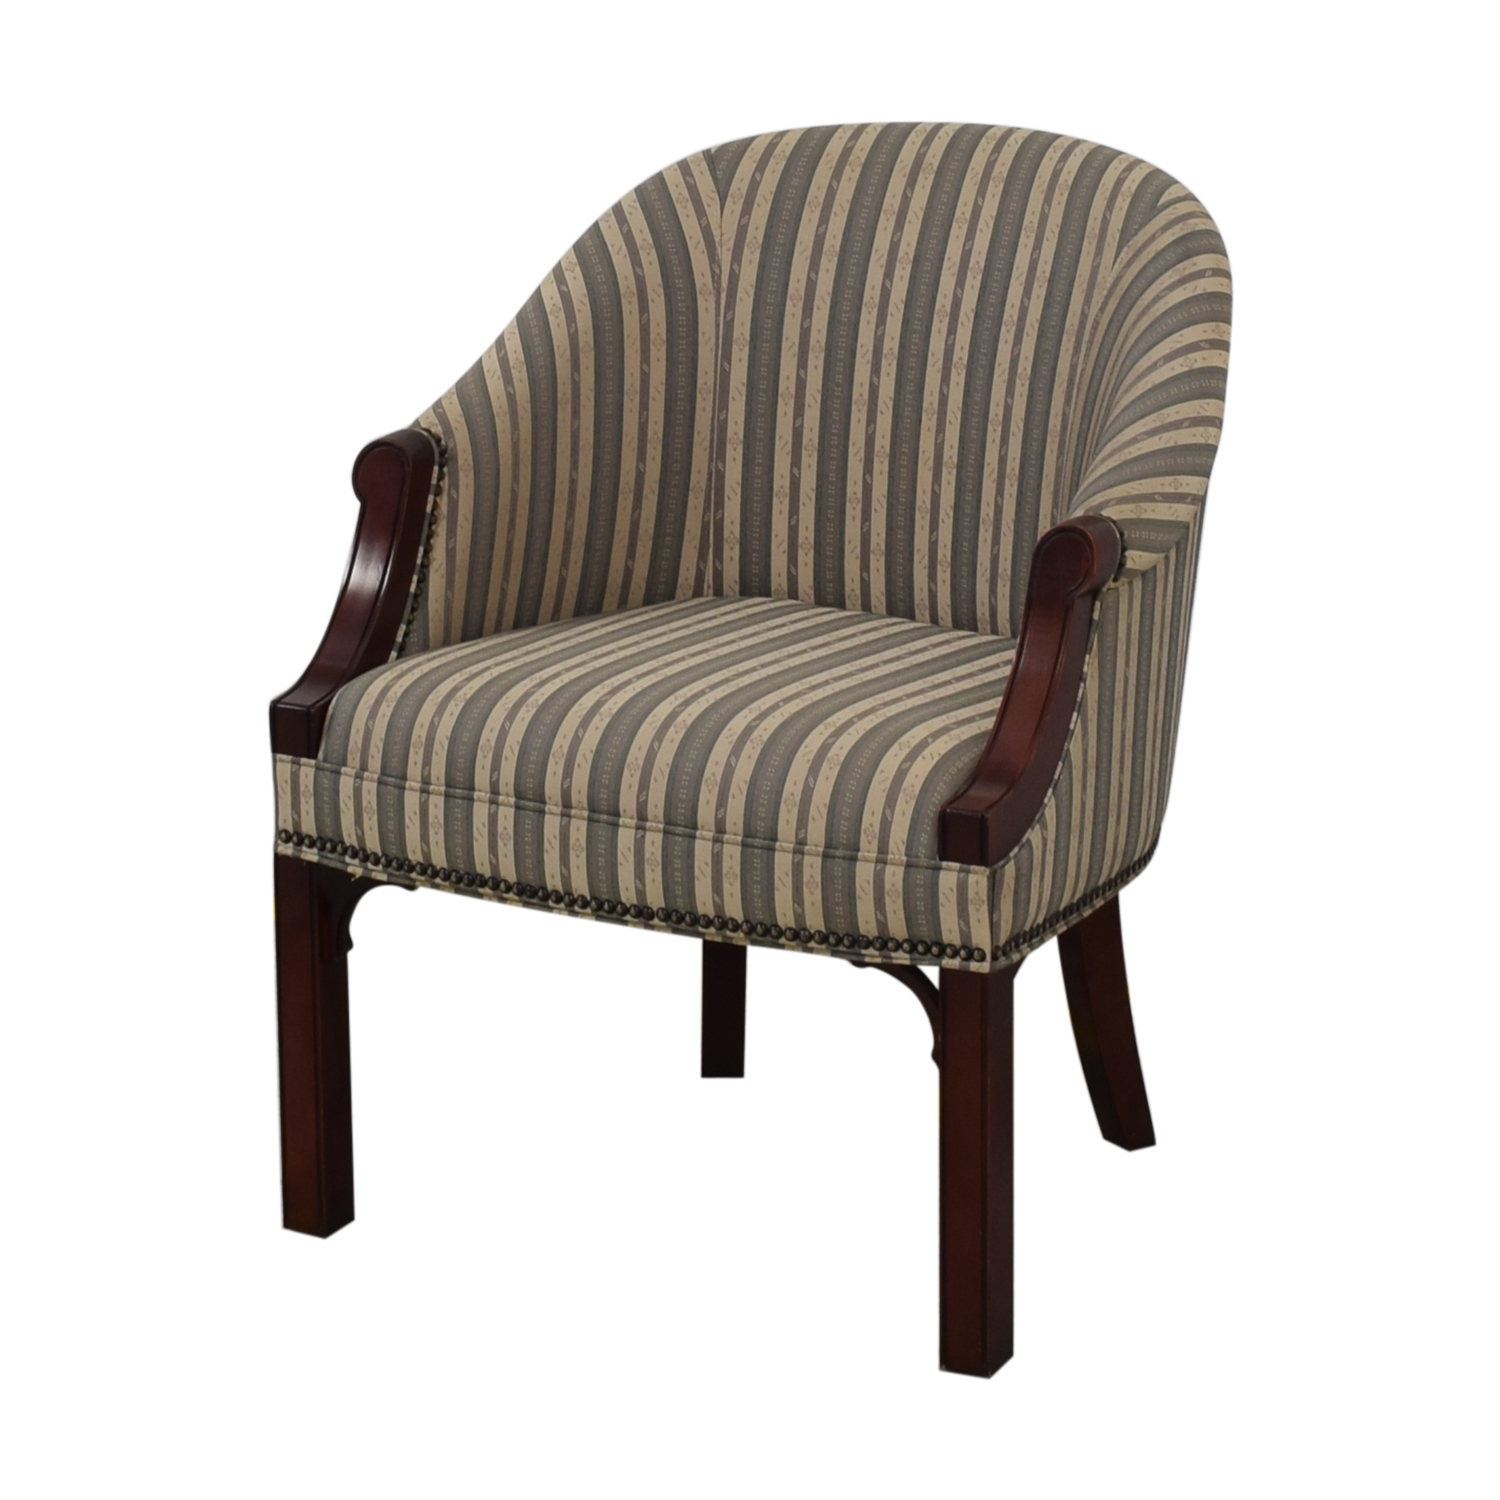 Kimball Independence Newcastle Striped Chair / Chairs